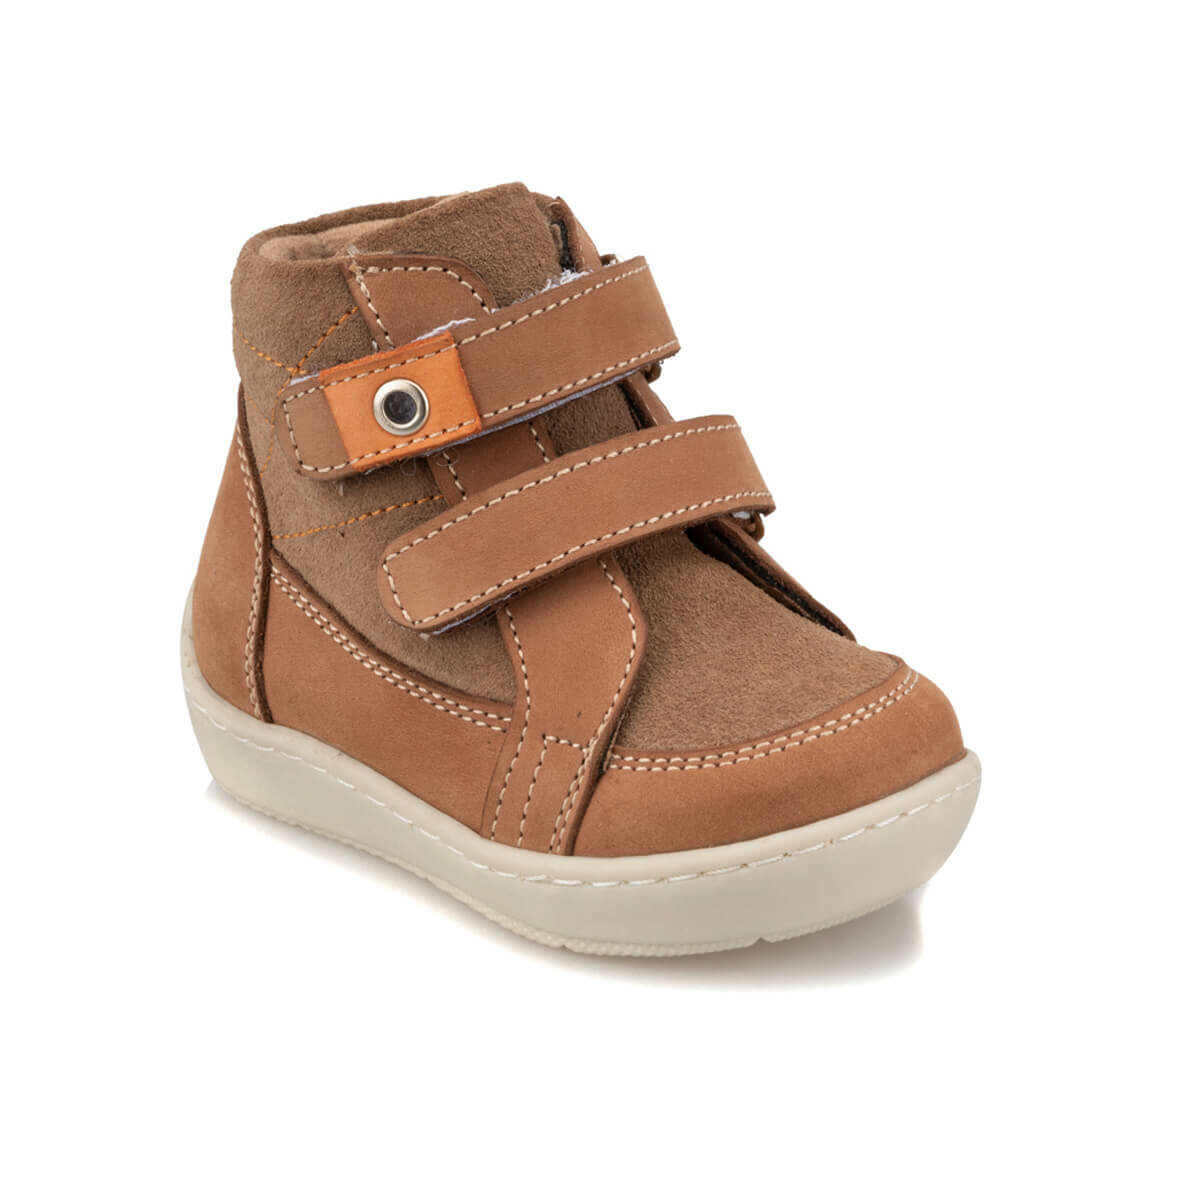 FLO 92.512016.I Sand Color Male Child Boots Polaris